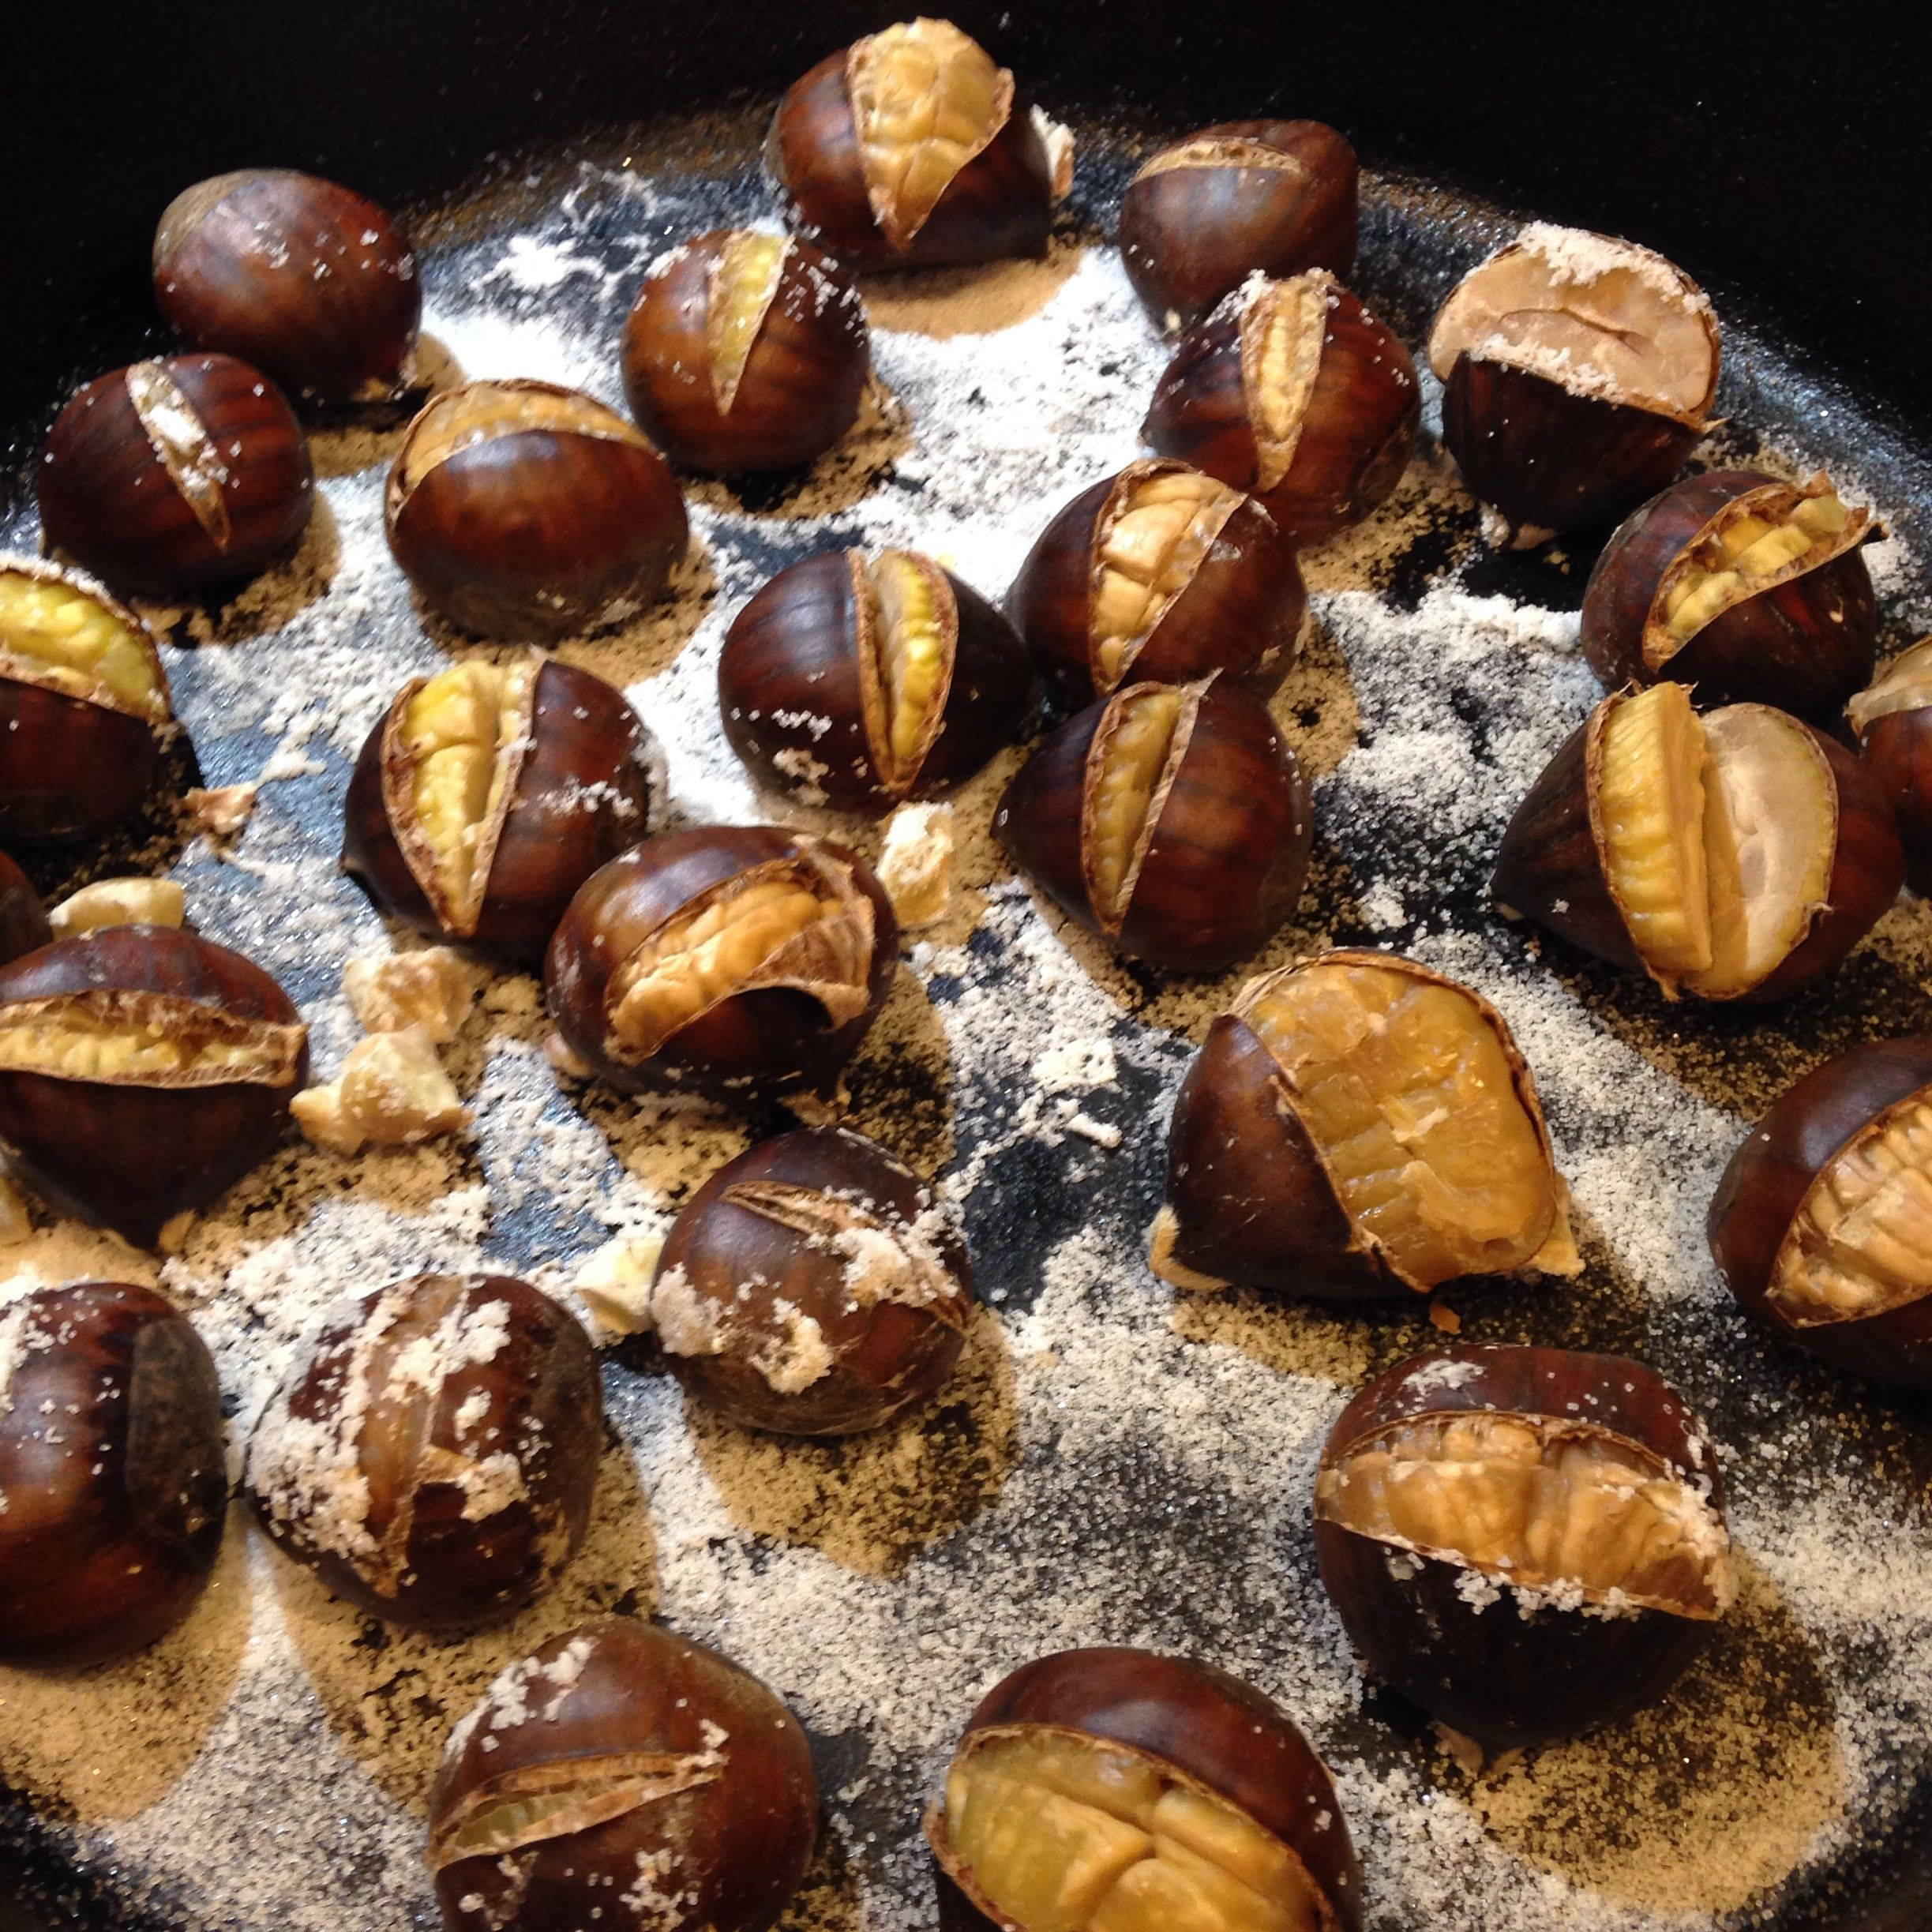 An easy way to enjoy roast chestnuts at home from the azorean an easy way to enjoy roast chestnuts at home from the azorean greenbean forumfinder Choice Image